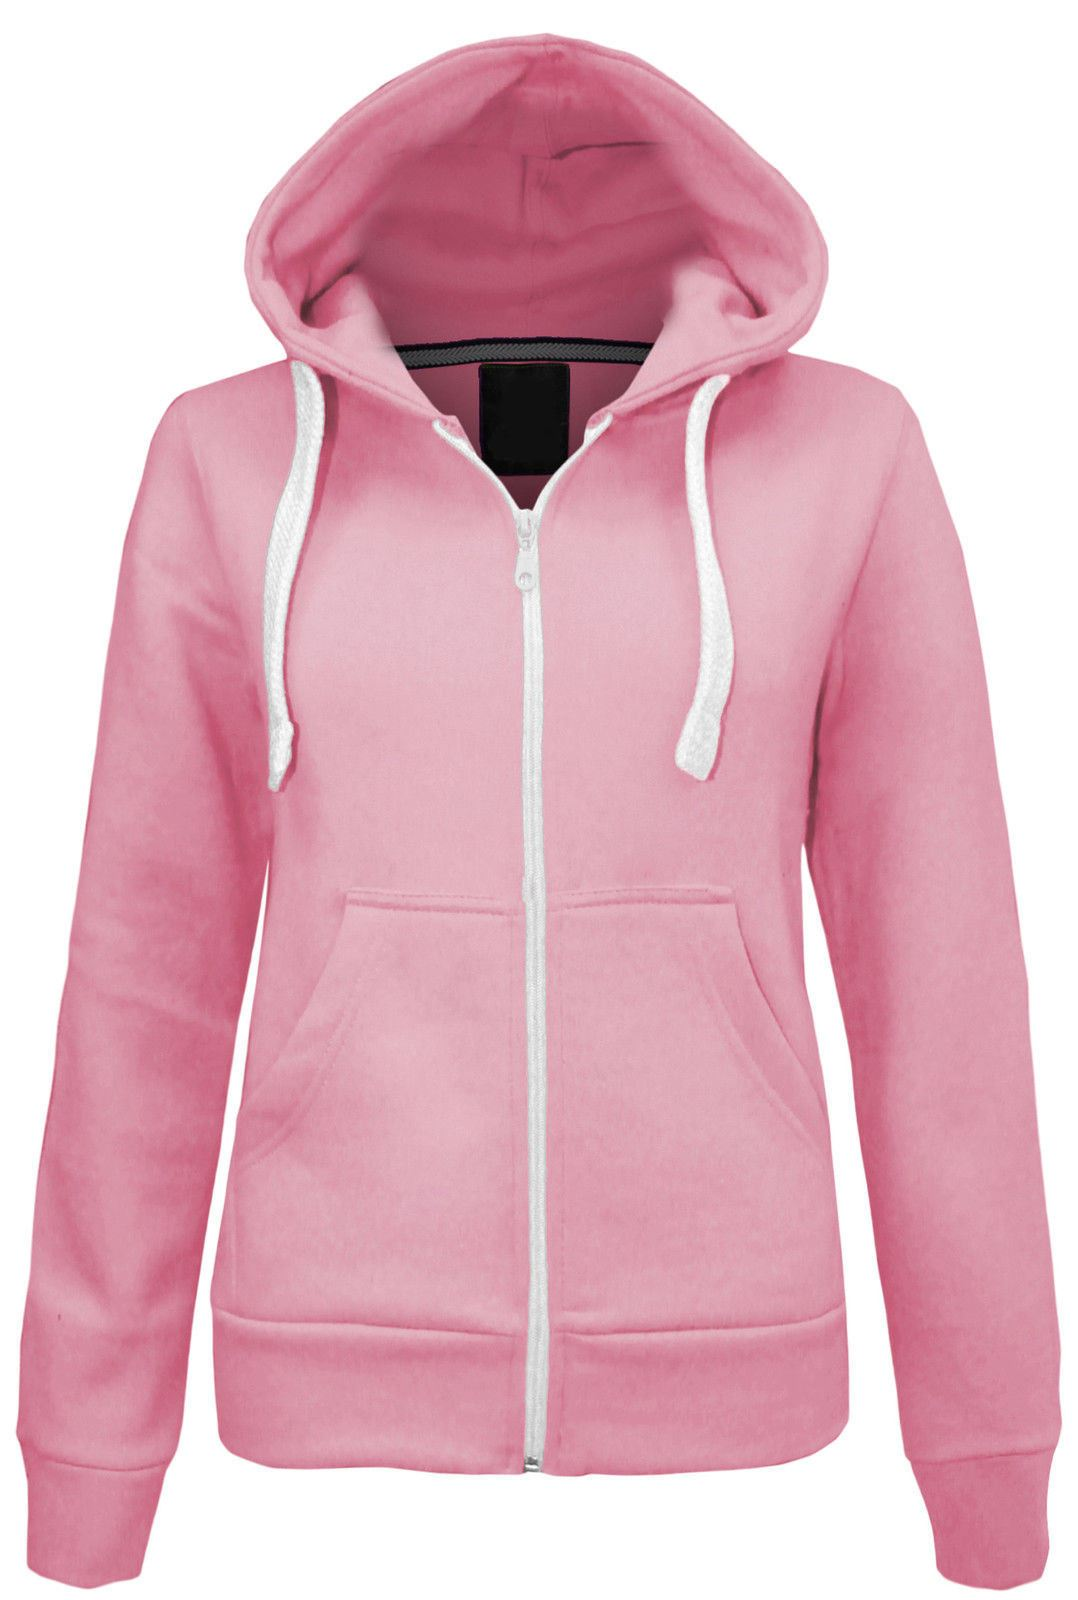 Ladies Pink Sweatshirt | Fashion Ql